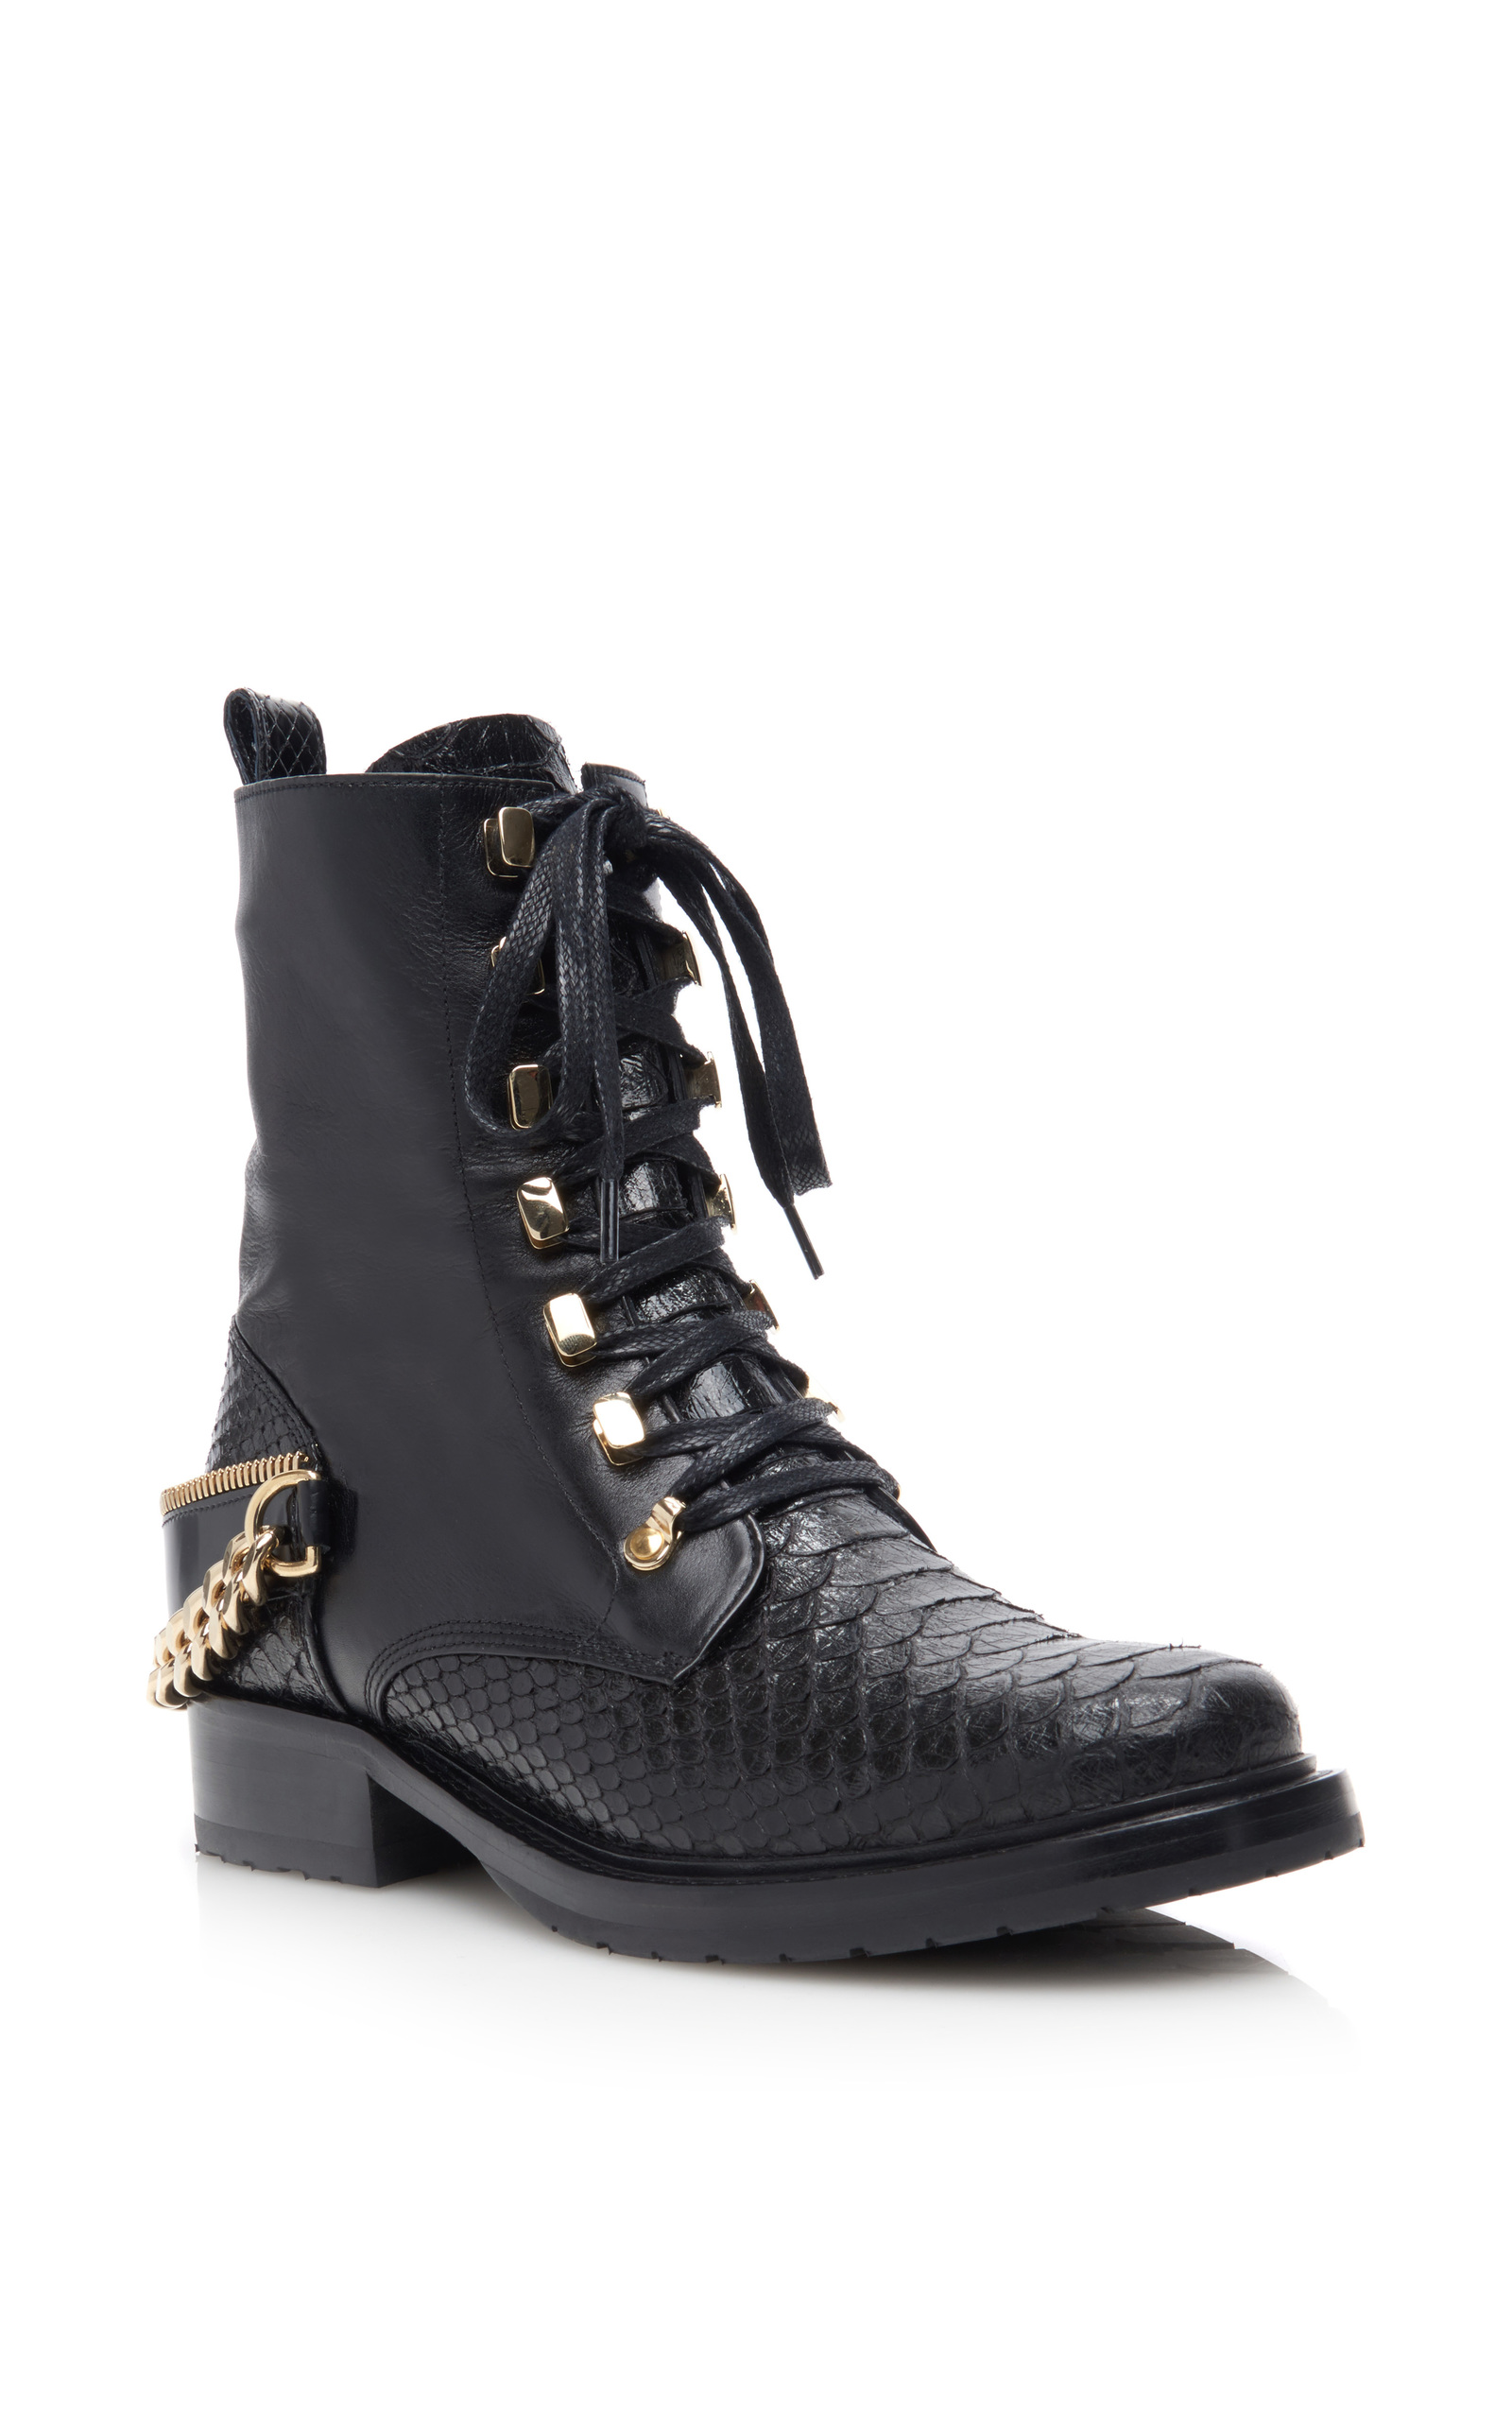 free shipping visit new 100% original sale online Lanvin Leather Lace-Up Boots discount pay with visa u5gA0